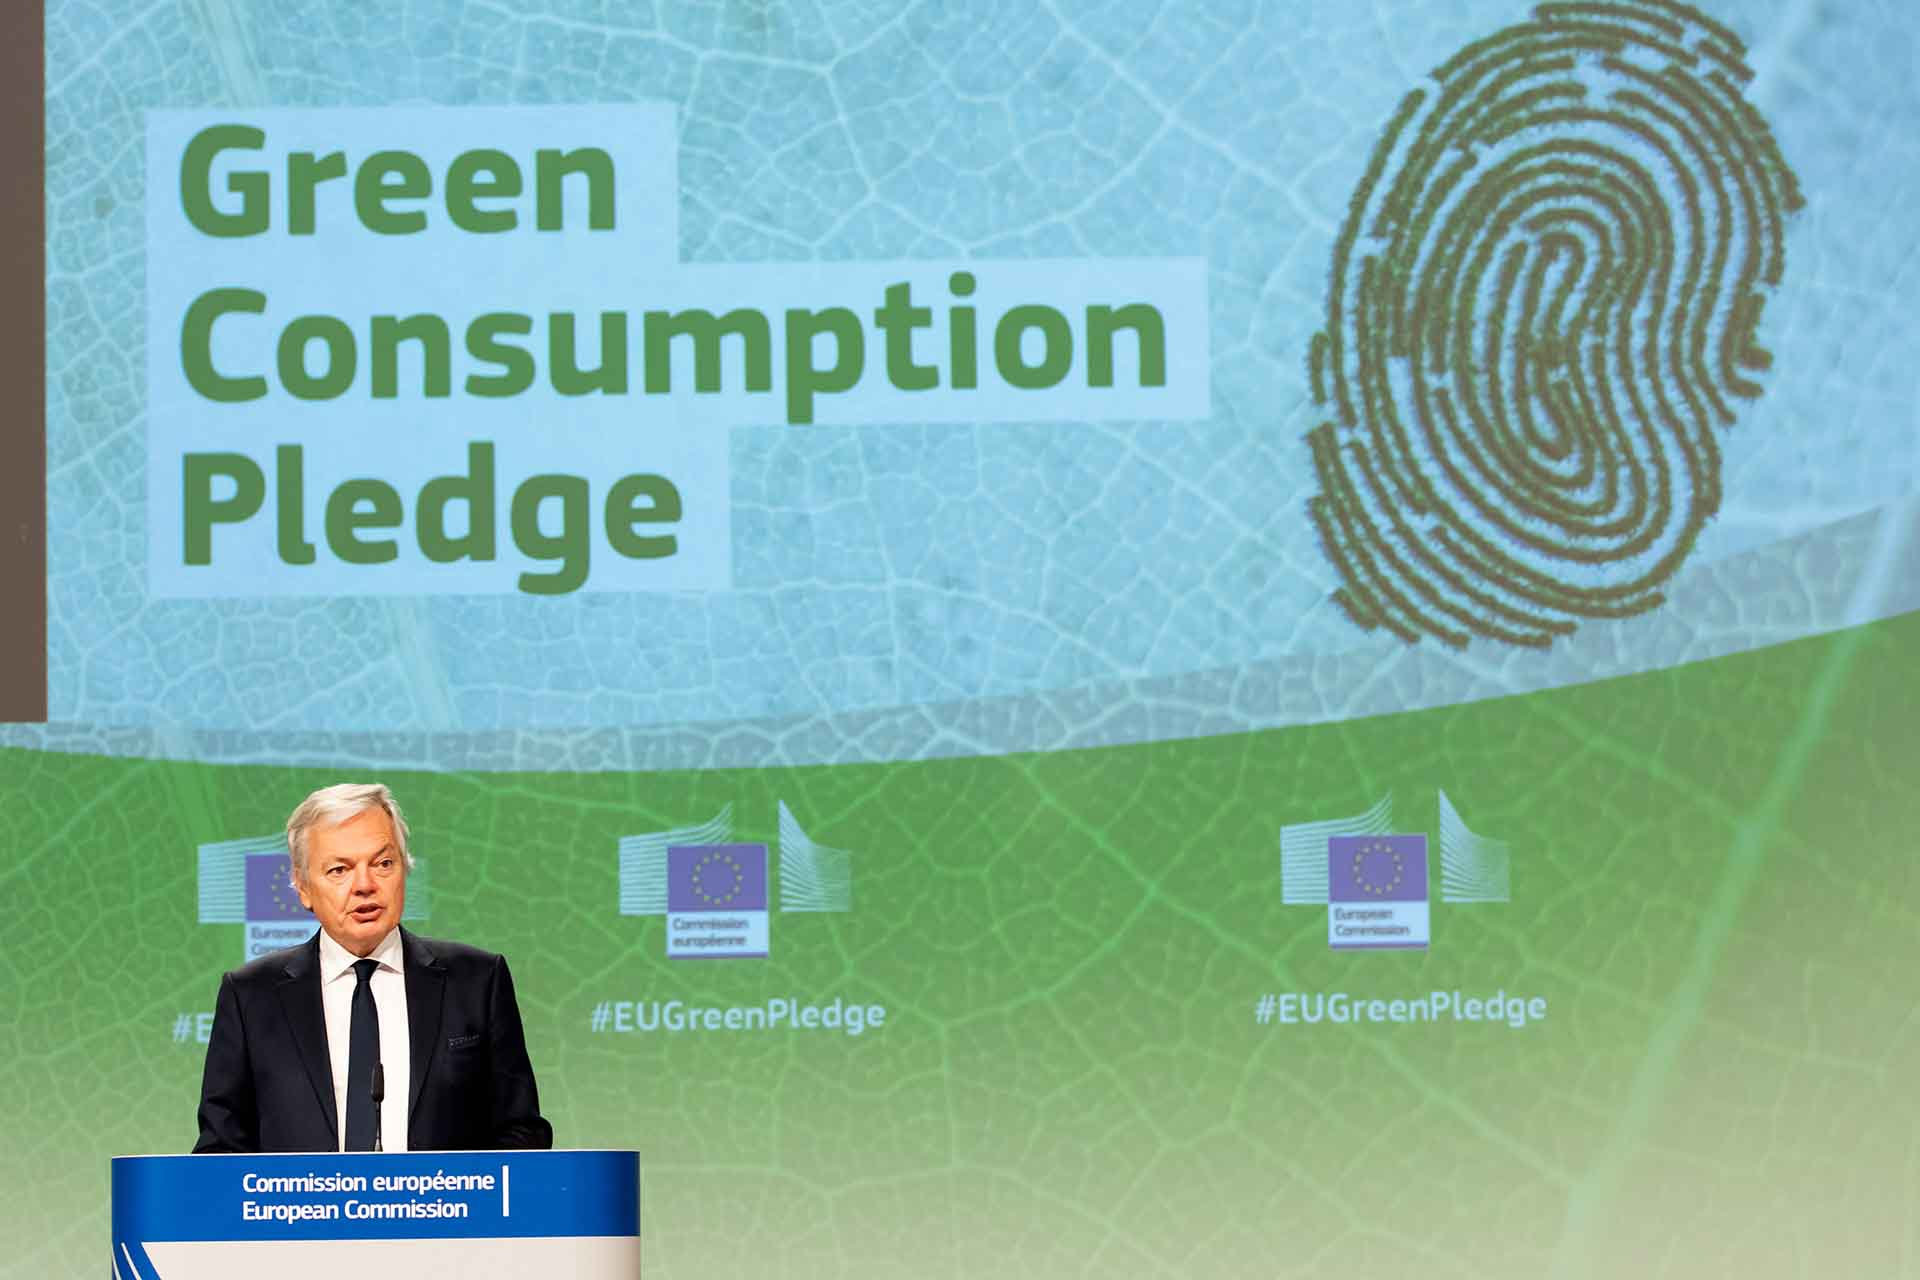 Green Consumption Pledge: LEGO e altre 4 aziende impegnate per l'economia sostenibile